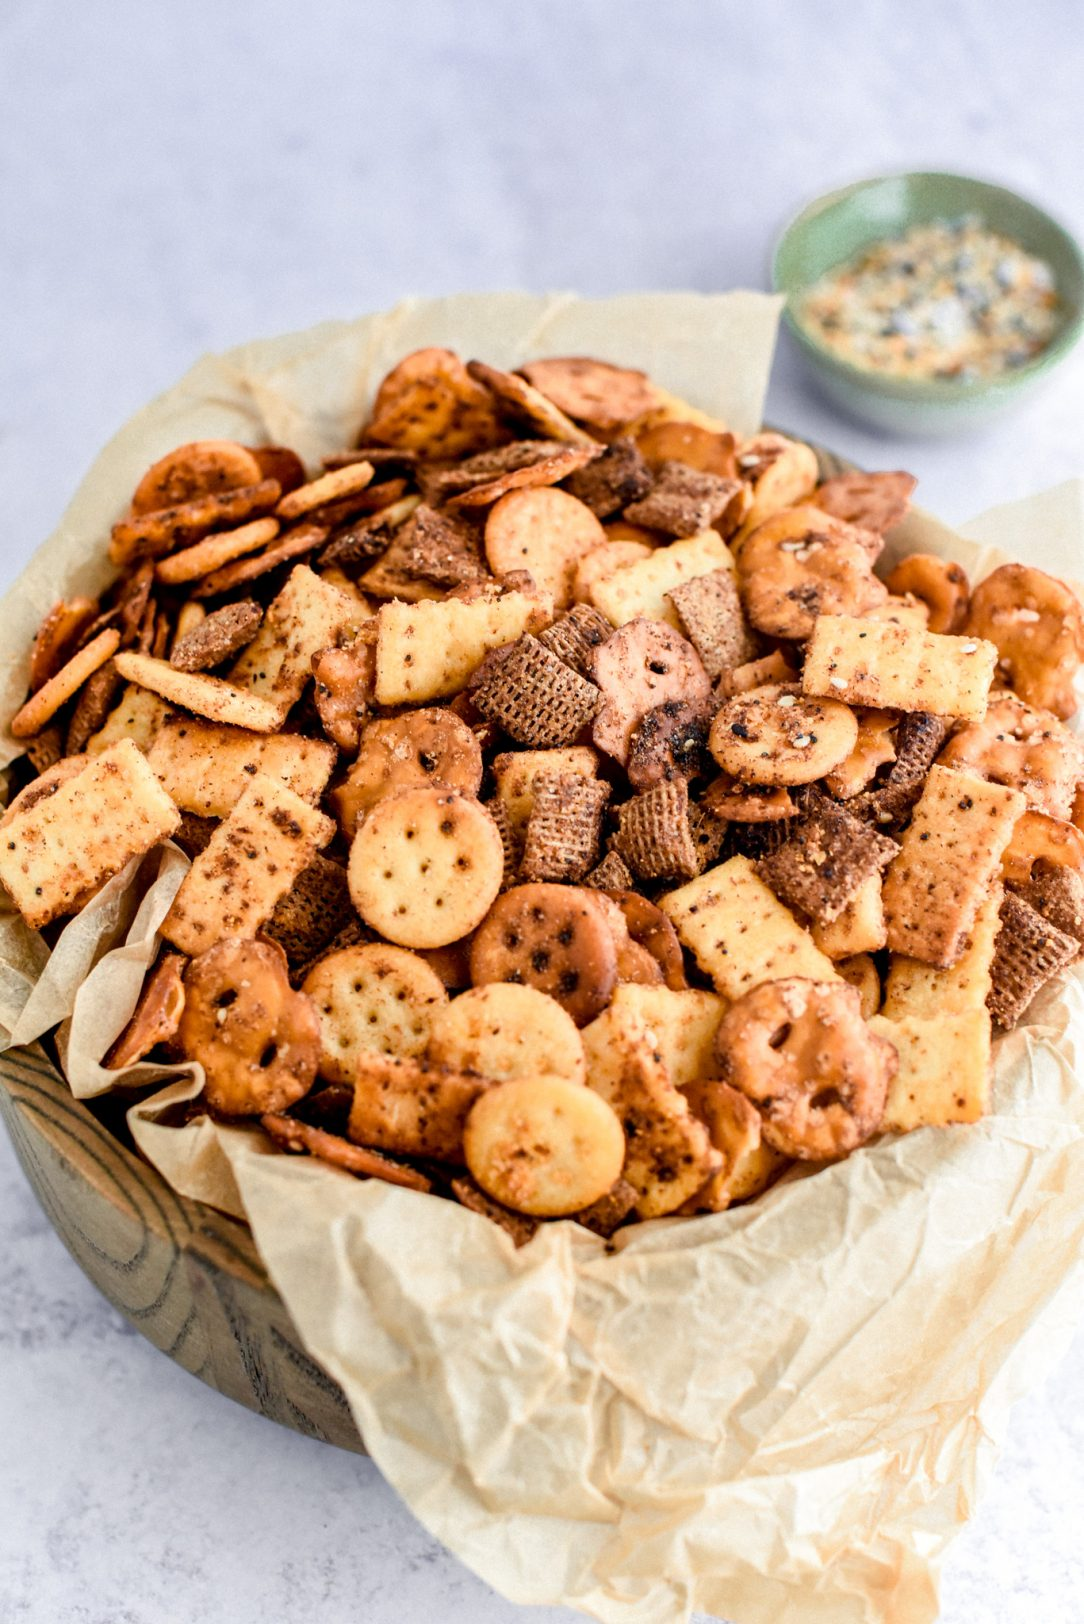 Snack mix in a serving bowl